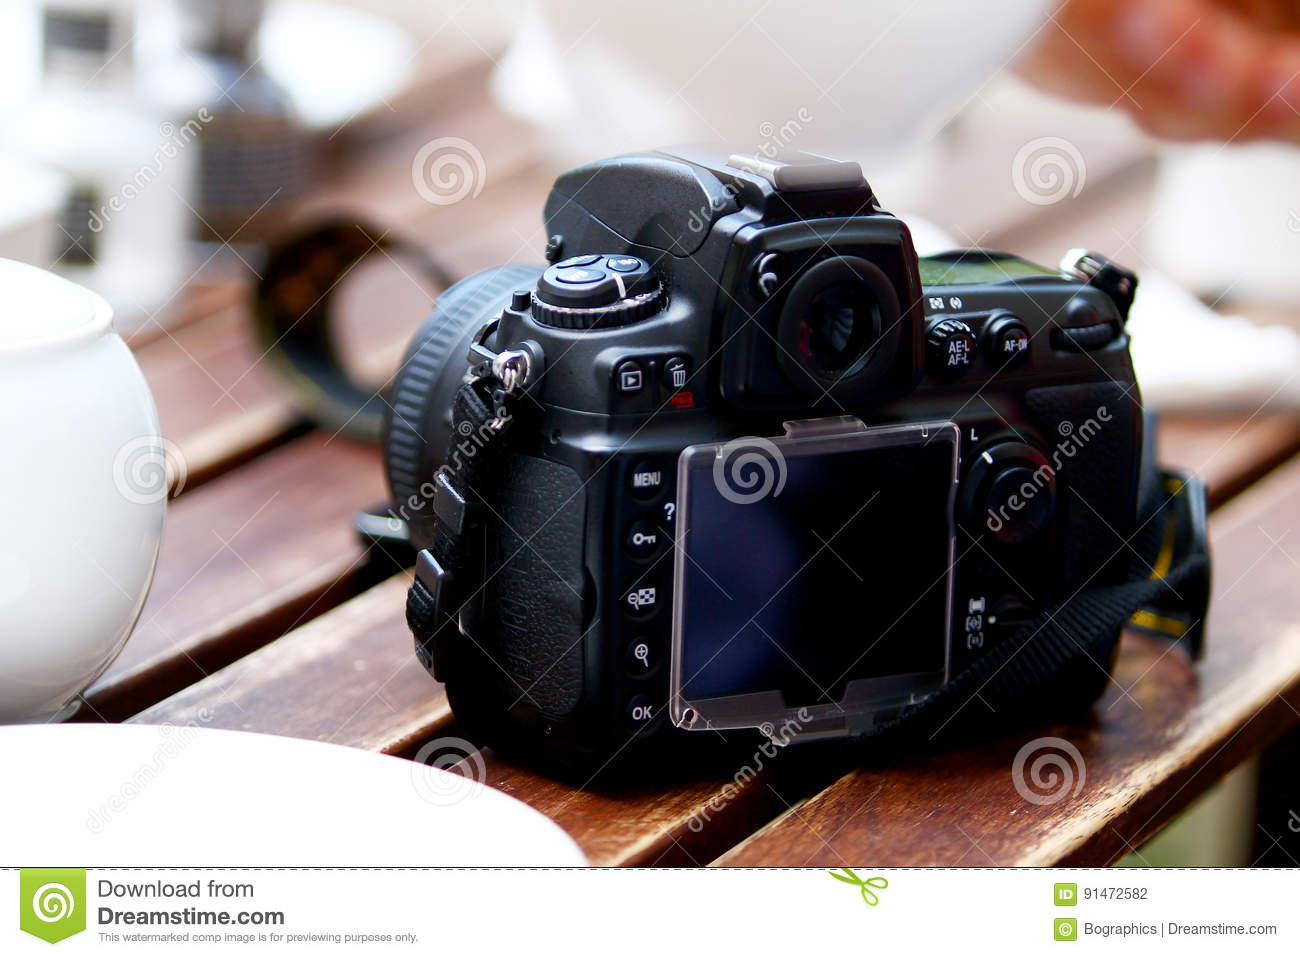 DSLR photo camera standing on table